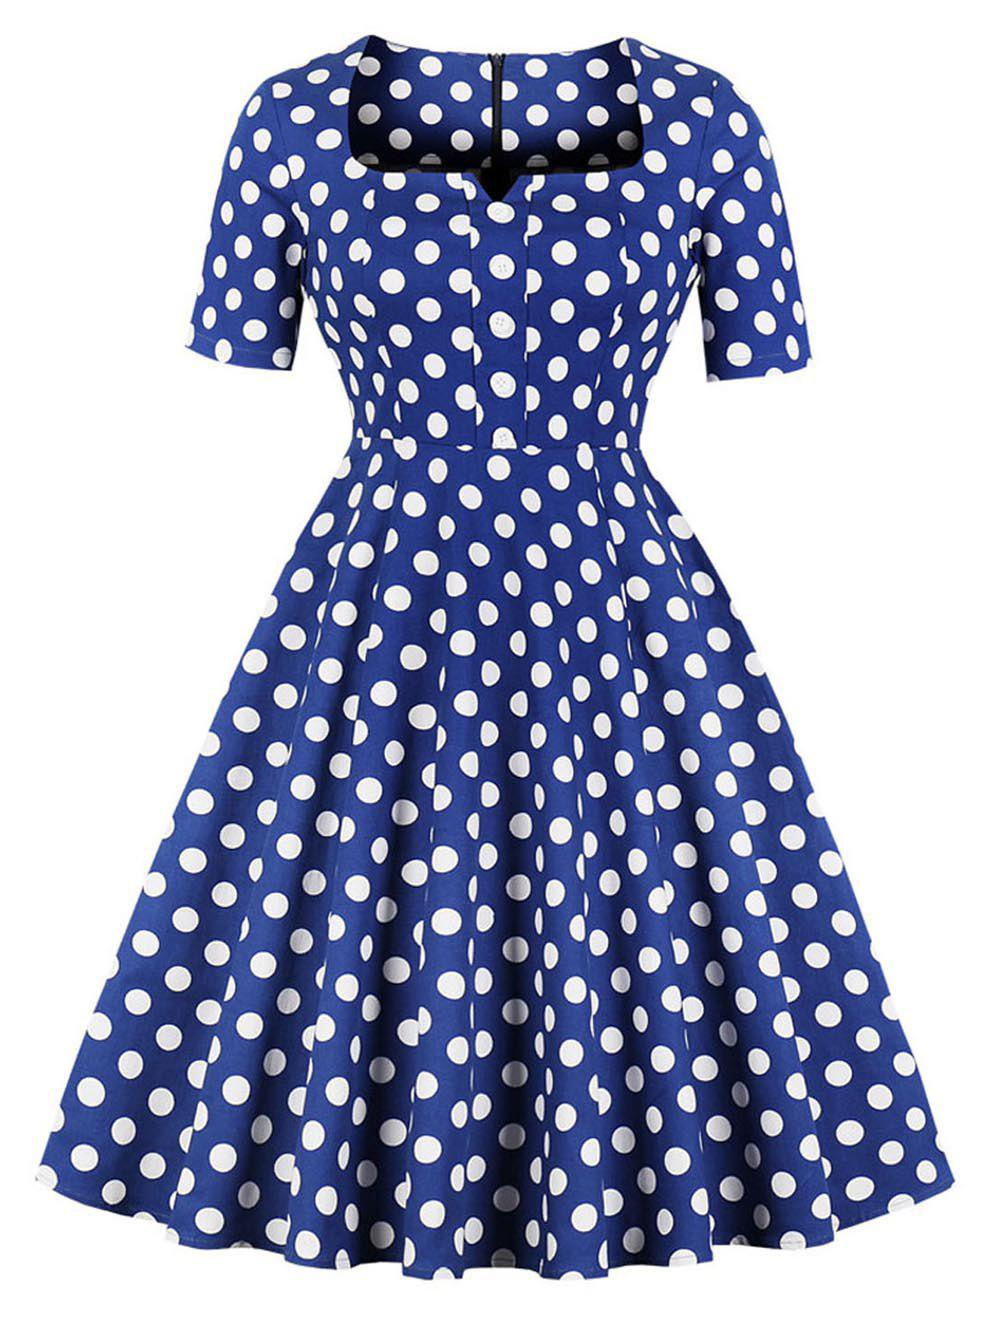 Outfit Hepburn Vintage Series Women Dress Spring And Summer Square-cut Collar Dot Printing Design Half Sleeve Corset Dress